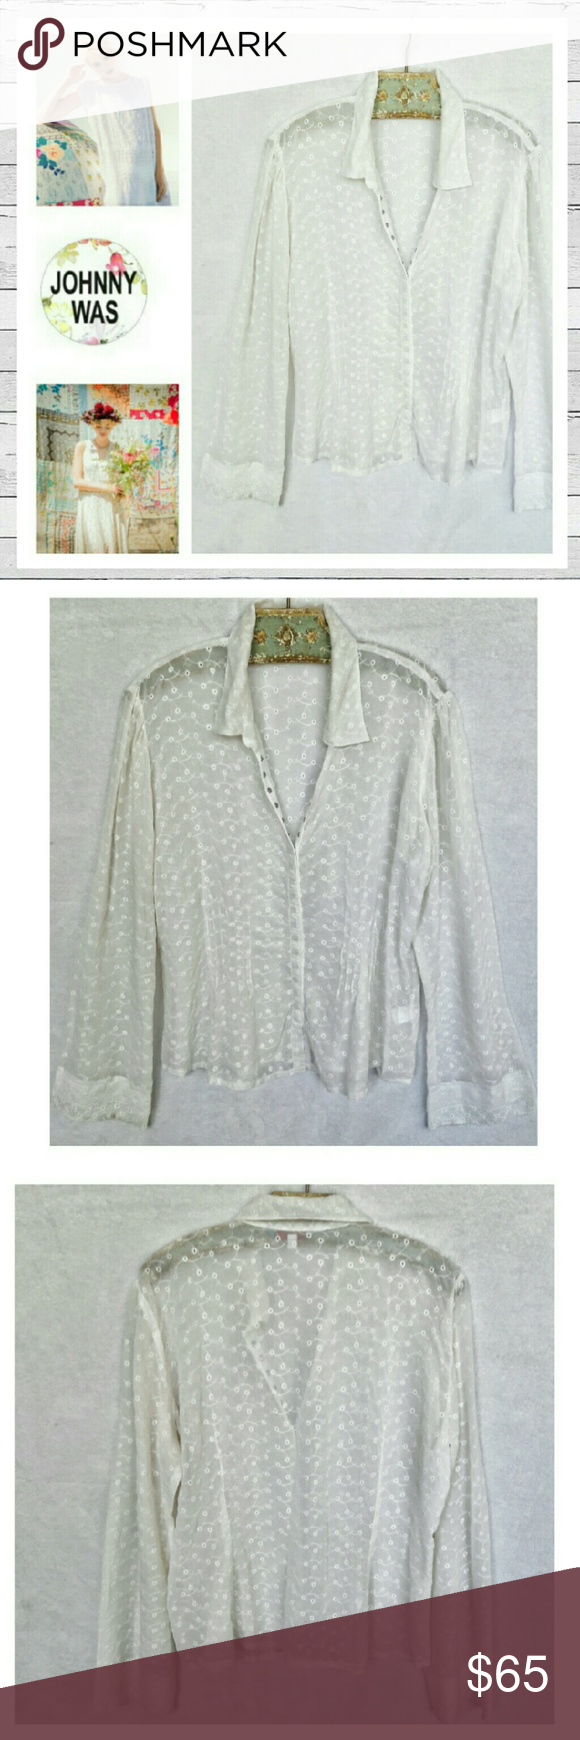 Johnny Was Sheer Eyelet Blouse Sz M Delicate and so feminine eyelet snap front blouse by Johnny Was. Beautiful detail. Nobody does it better than Johnny Was. Very good previously loved condition. Sorry no trades. Johnny Was Tops Blouses